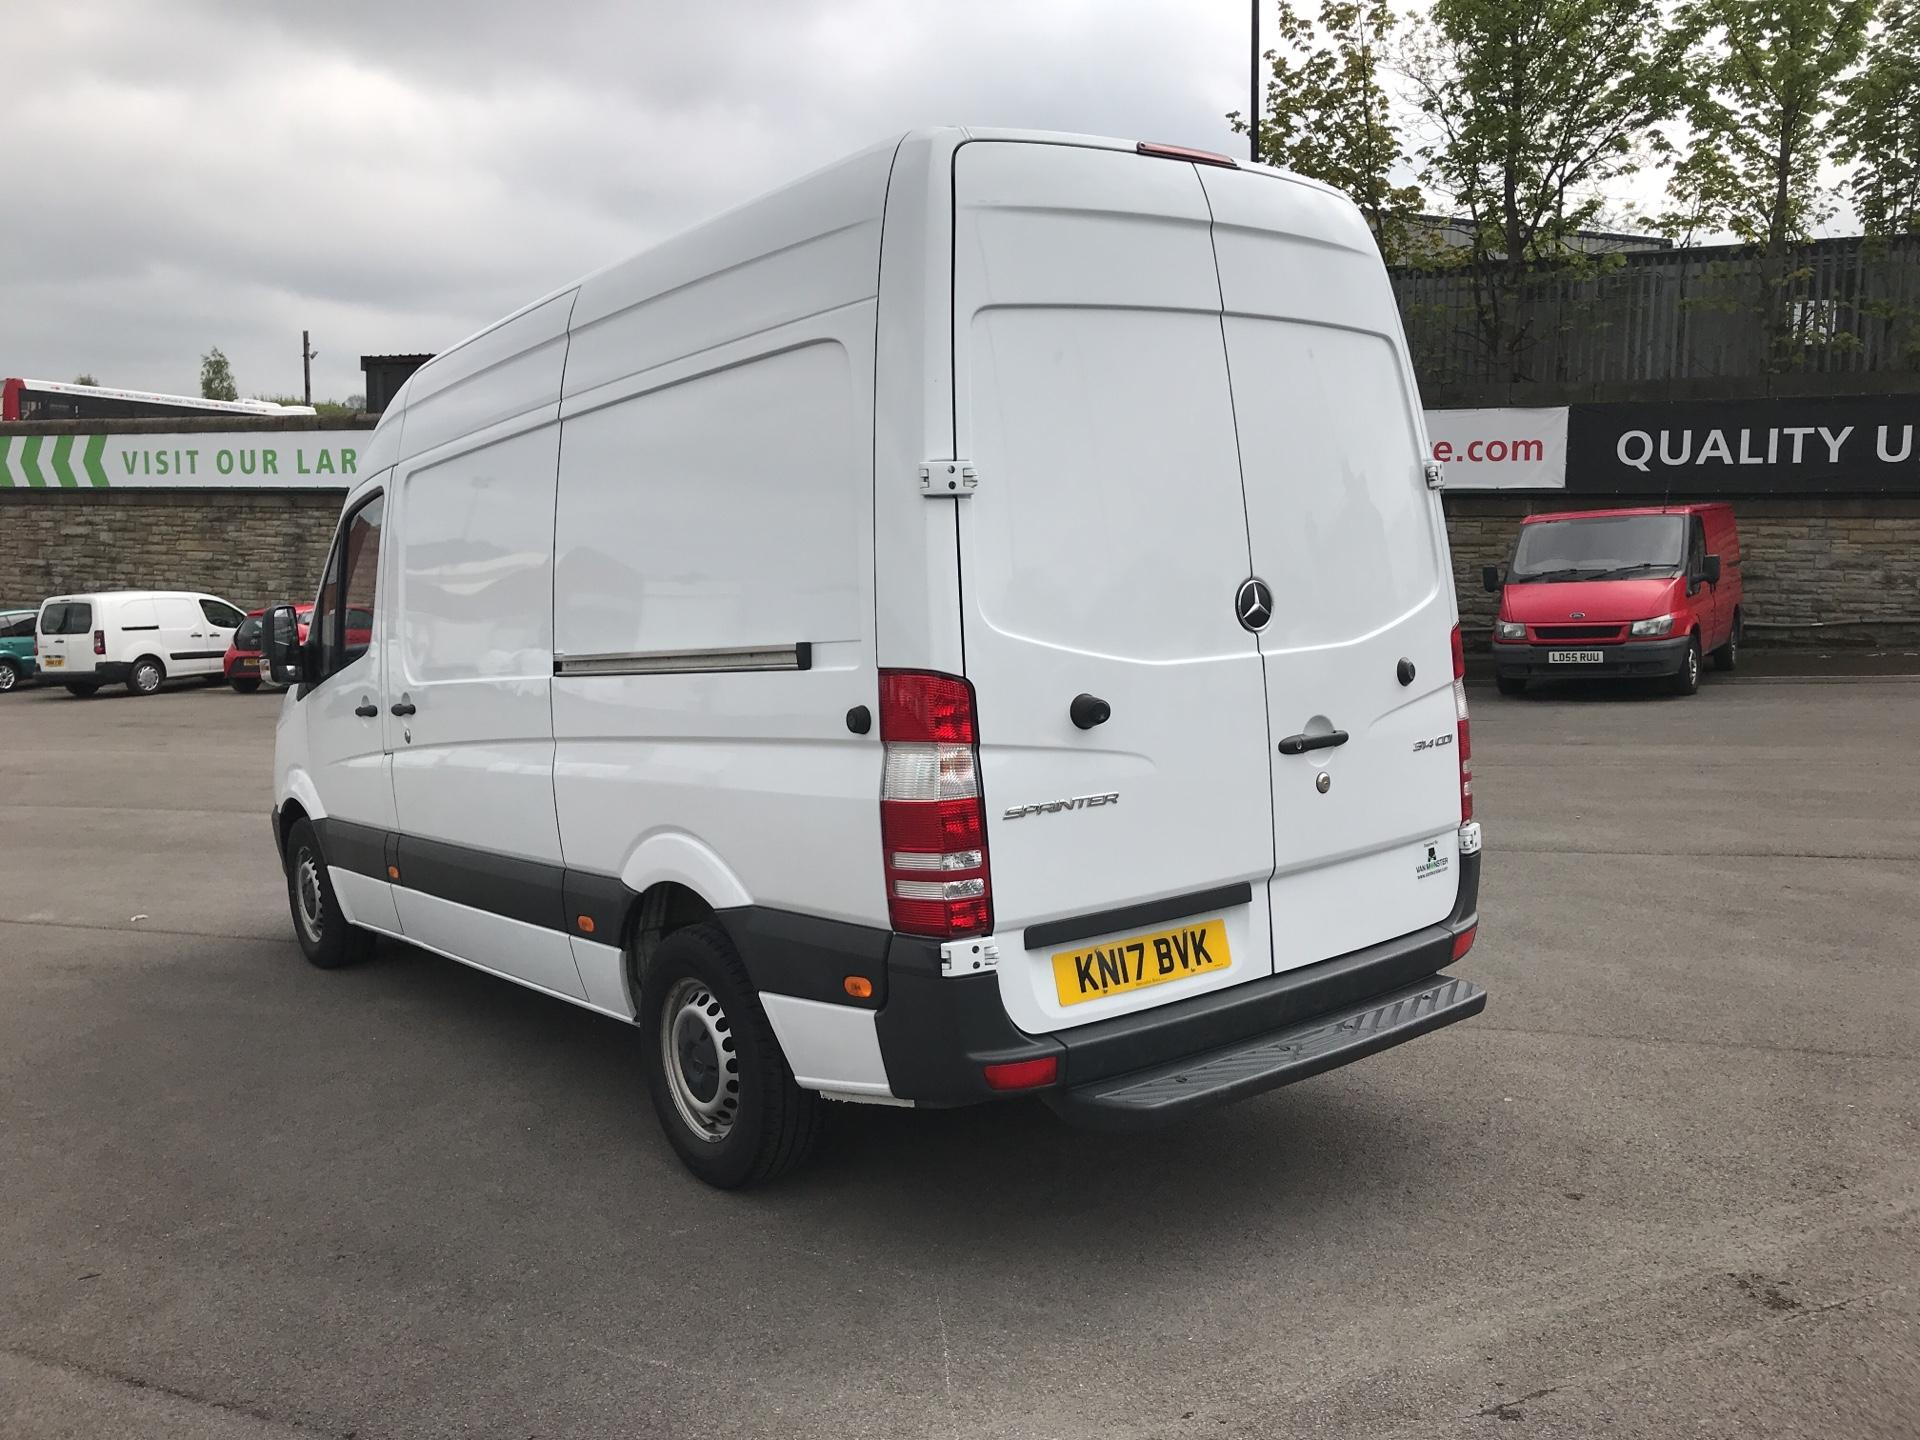 2017 Mercedes-Benz Sprinter 3.5T High Roof Van MWB (KN17BVK) Image 5